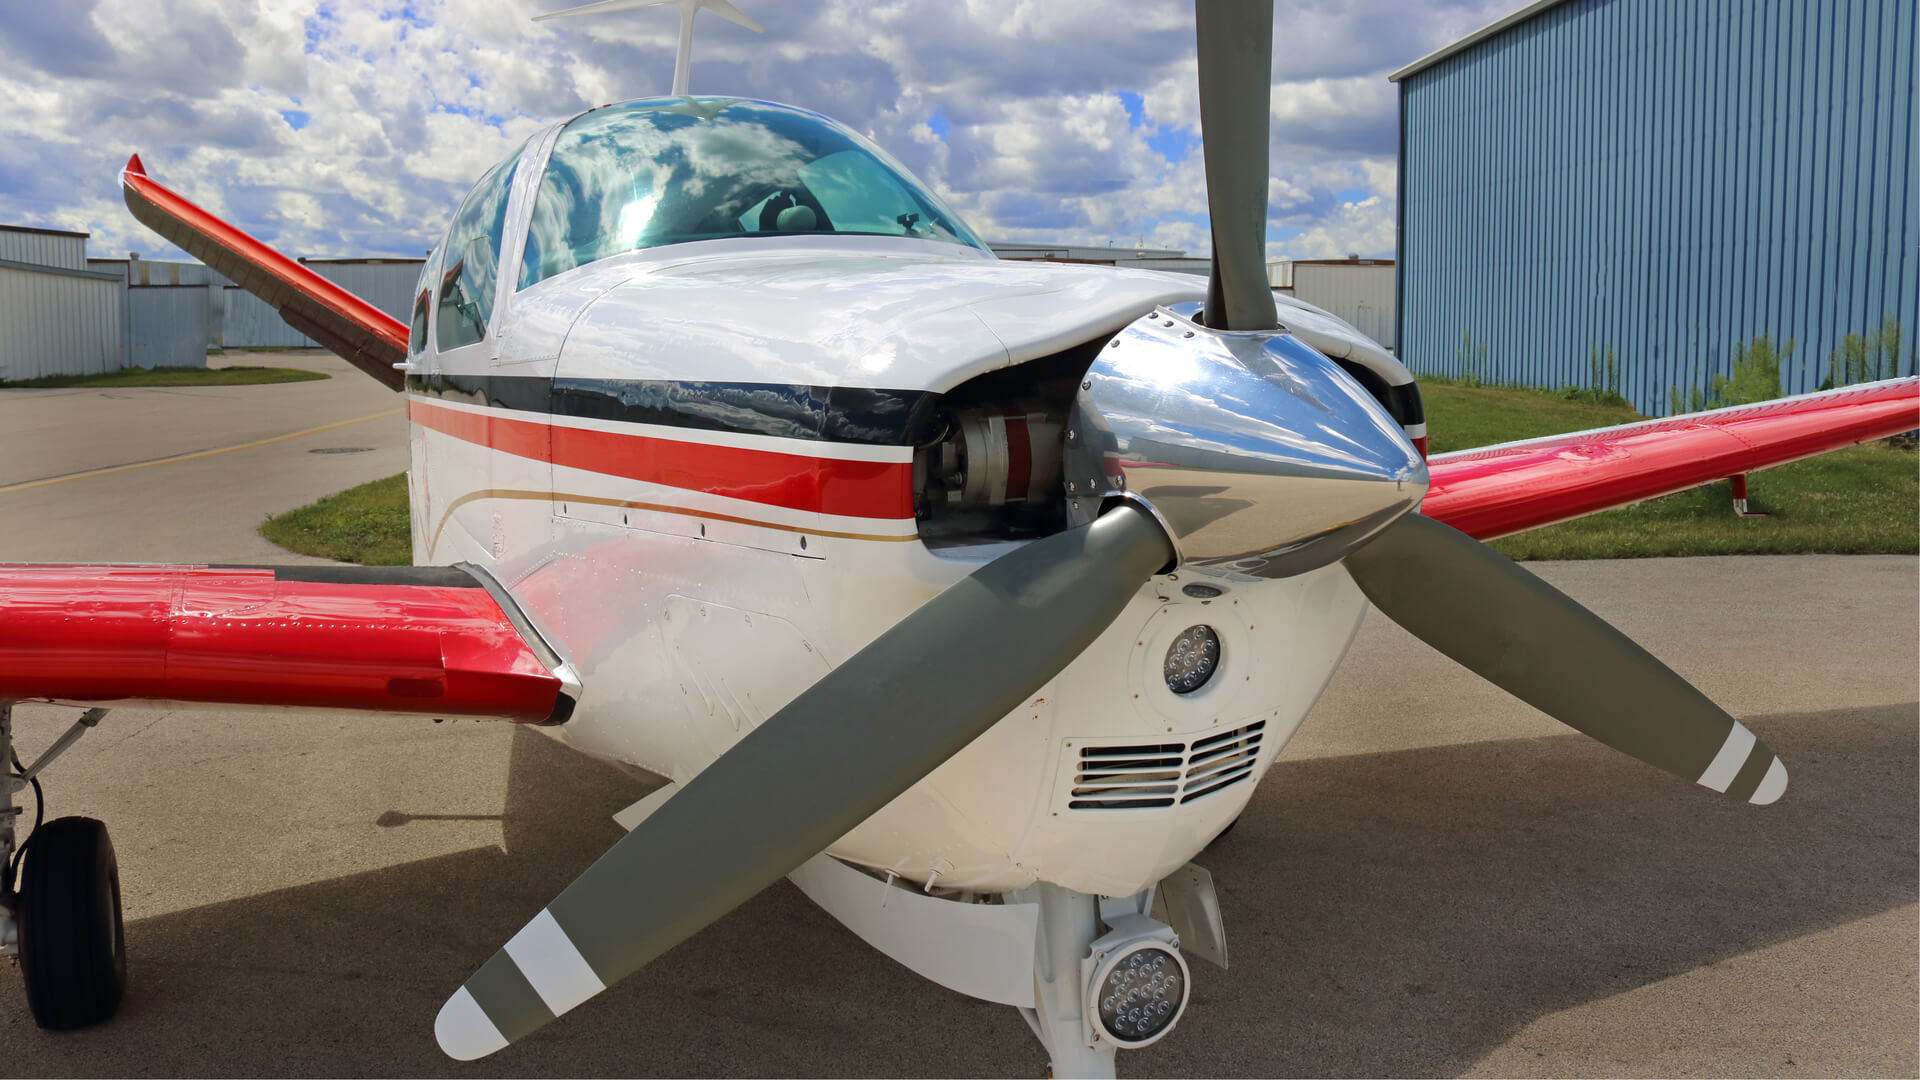 Aircraft, aviation Chrome Plating, Chroming and Rechroming